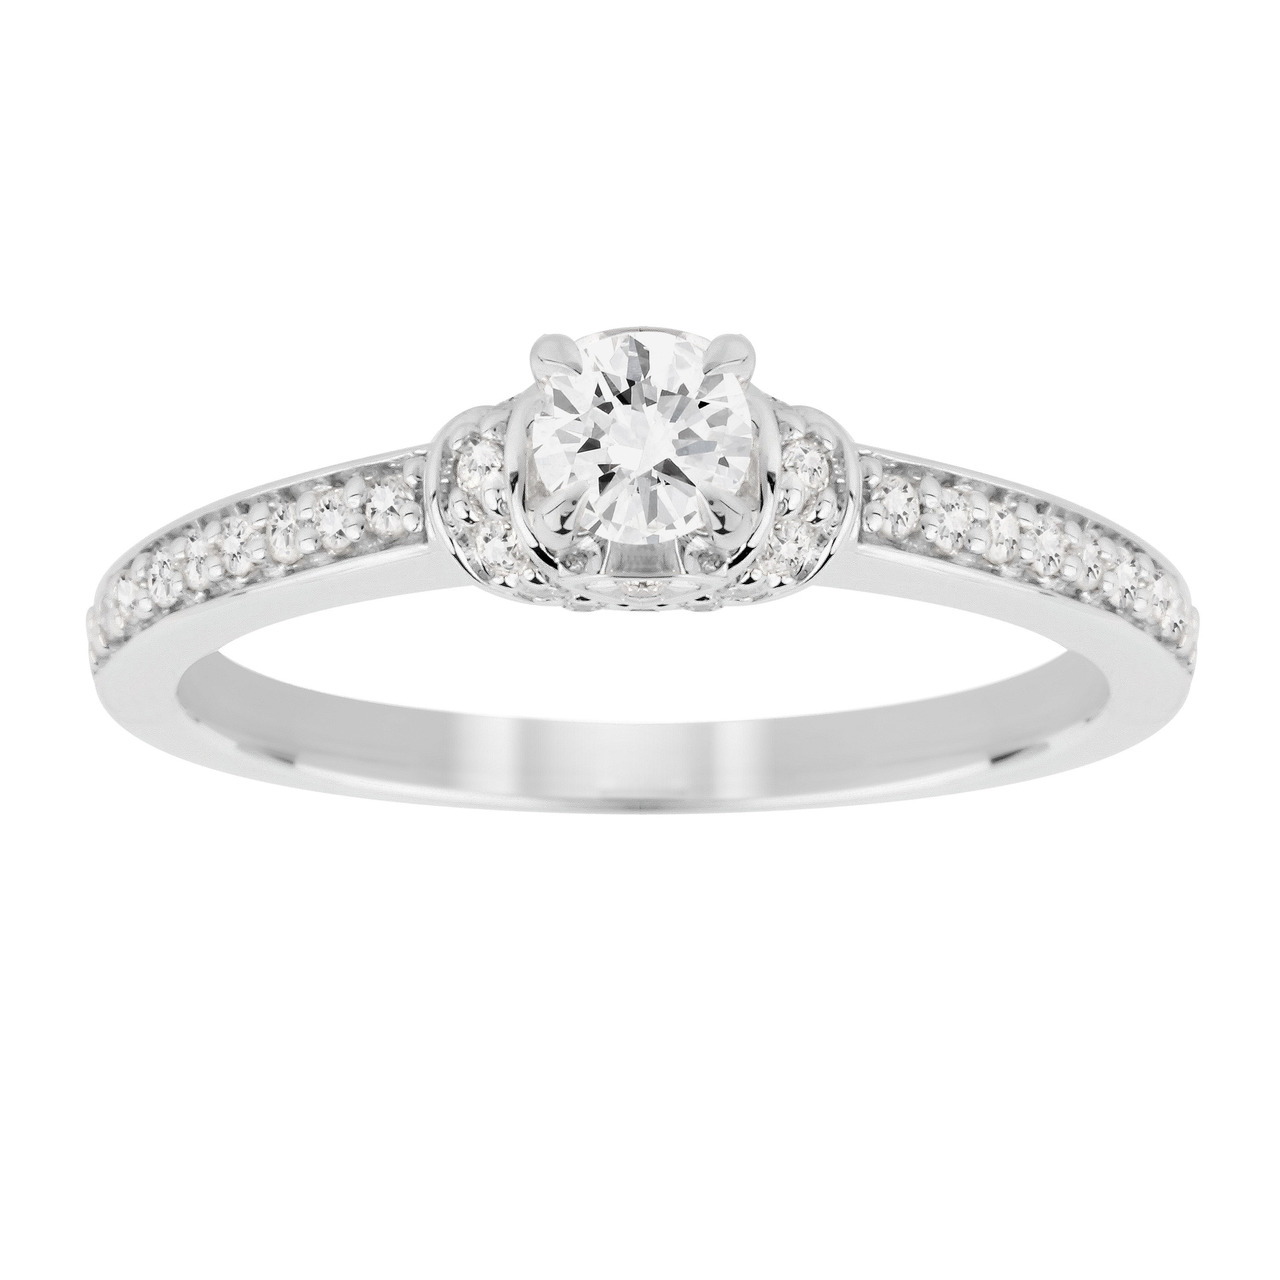 Jenny Packham Brilliant Cut 0.45 Carat Total Weight Diamond Art Deco Style Ring in 18 Carat White Go